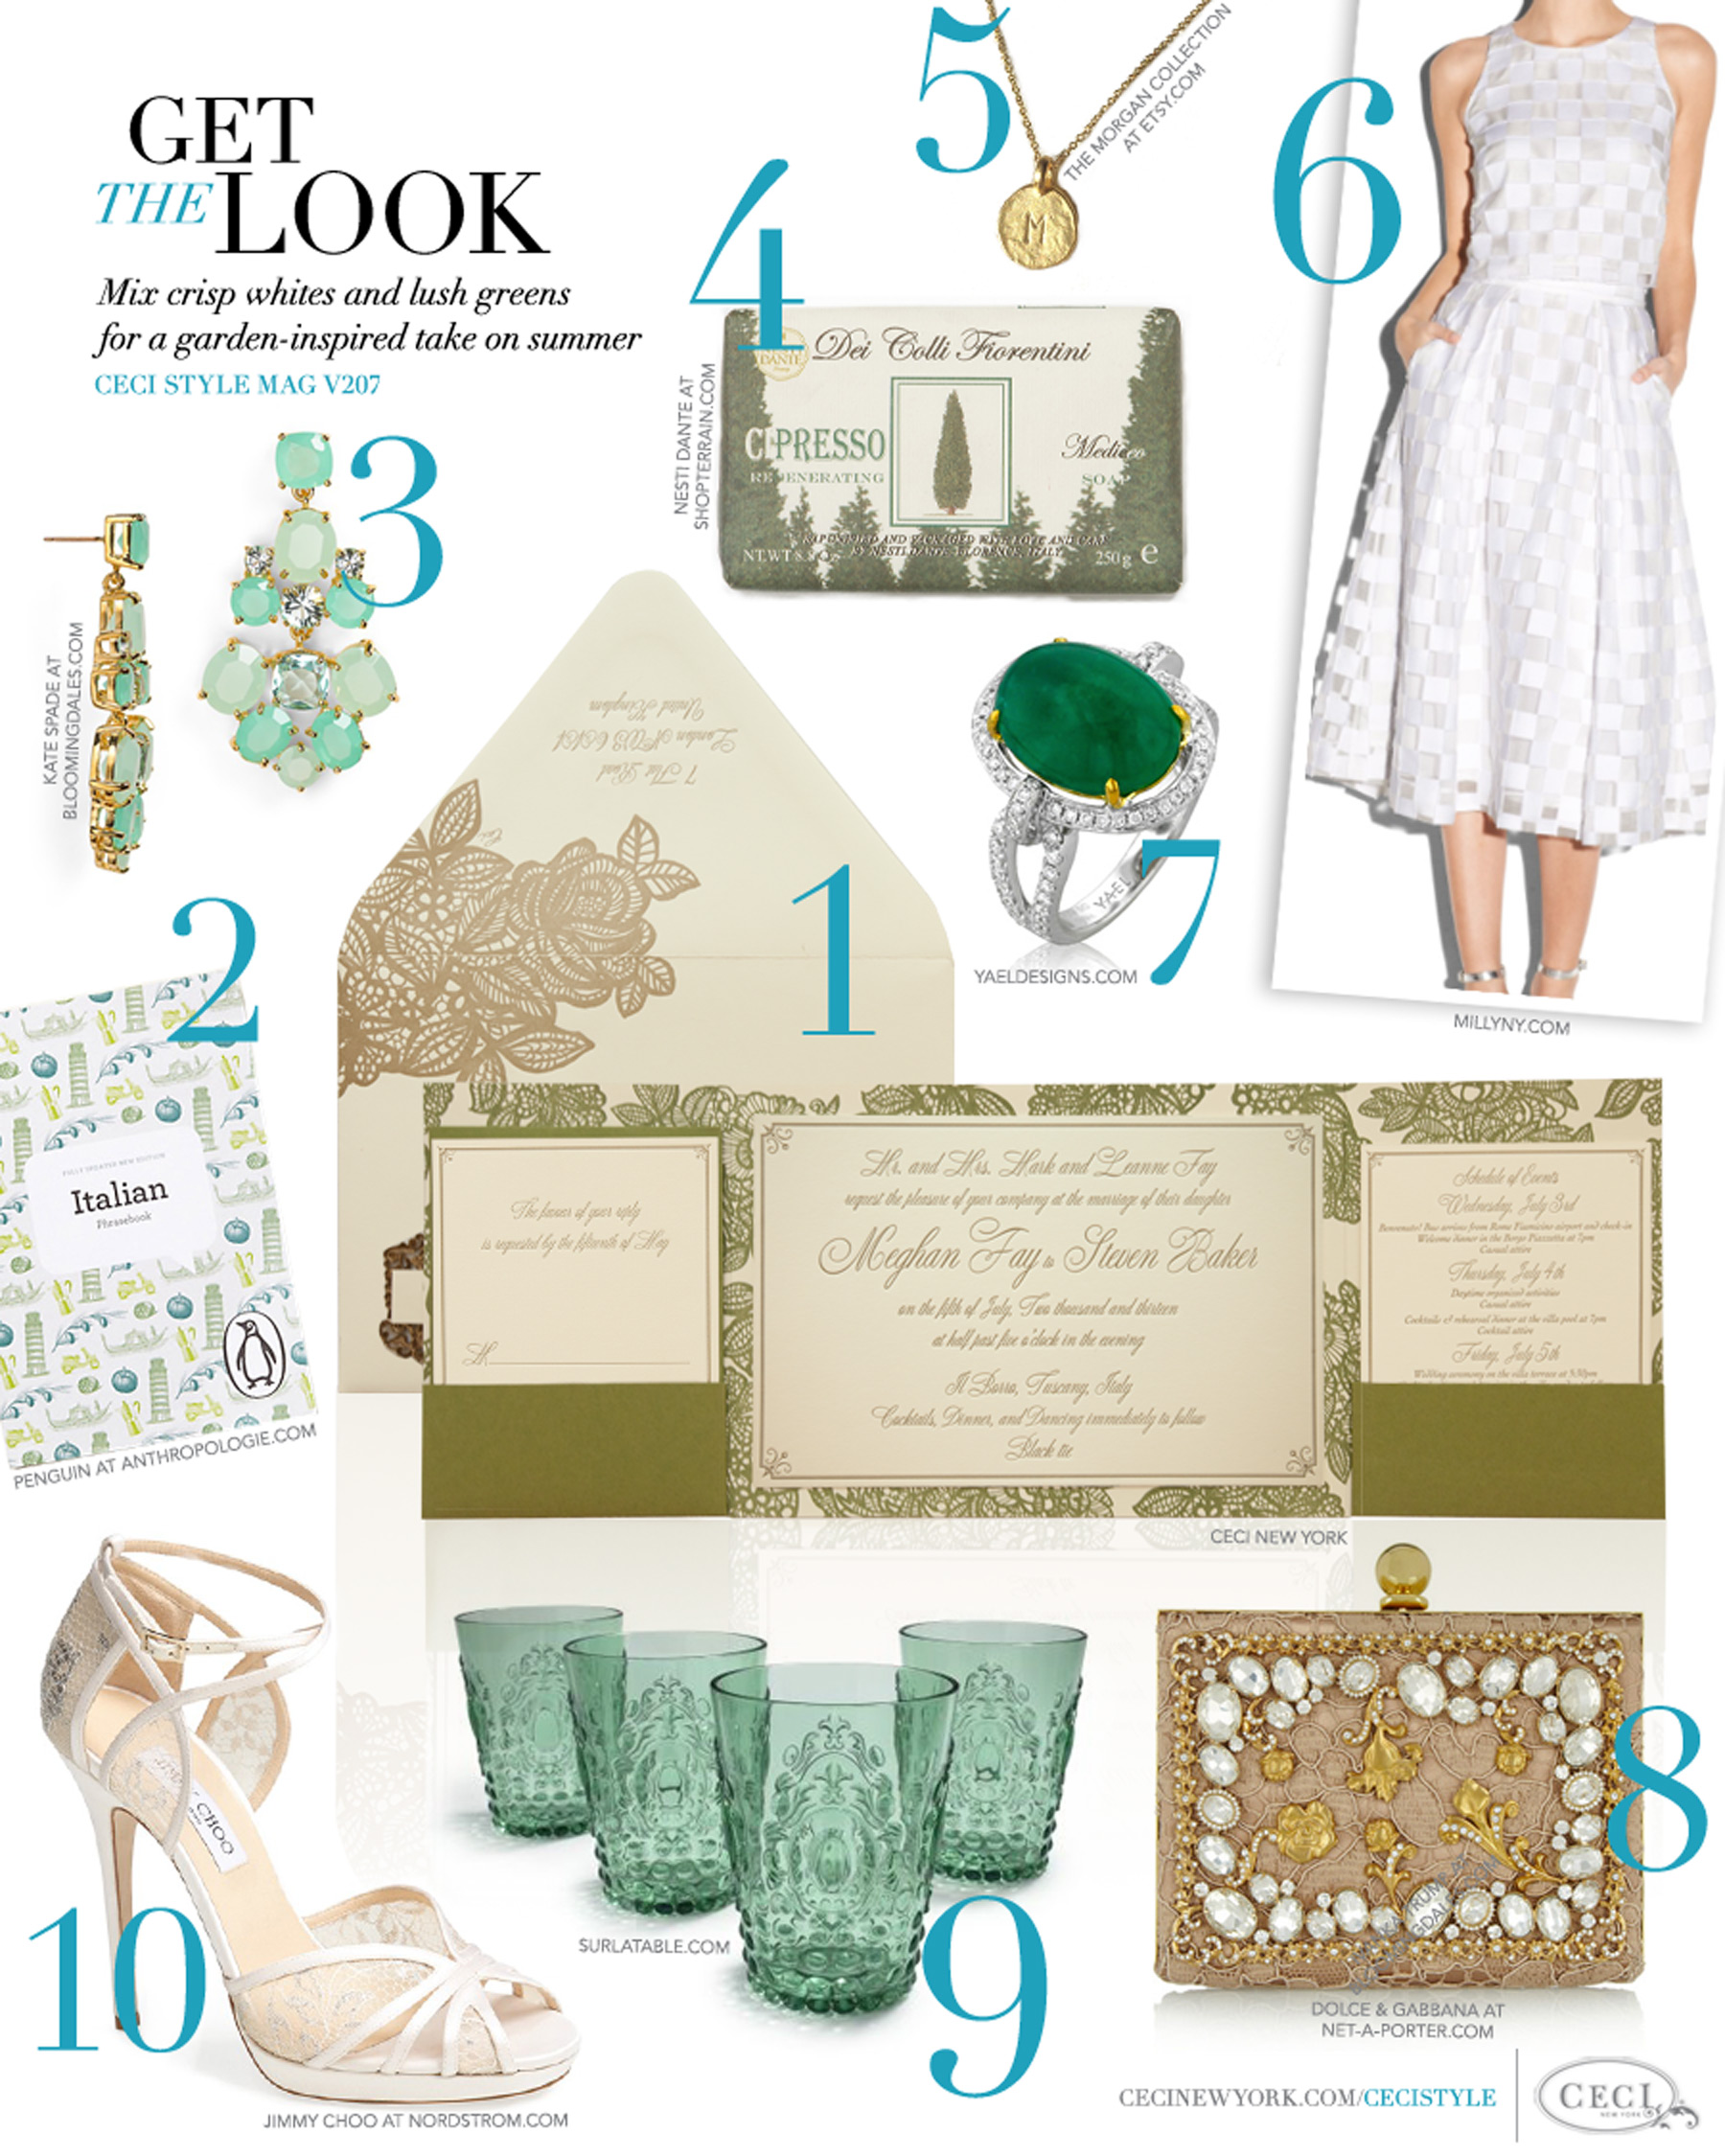 V207 get the look garden gorgeous ceci style cecistyle magazine v207 get the look garden gorgeous mix crisp whites and lush monicamarmolfo Image collections